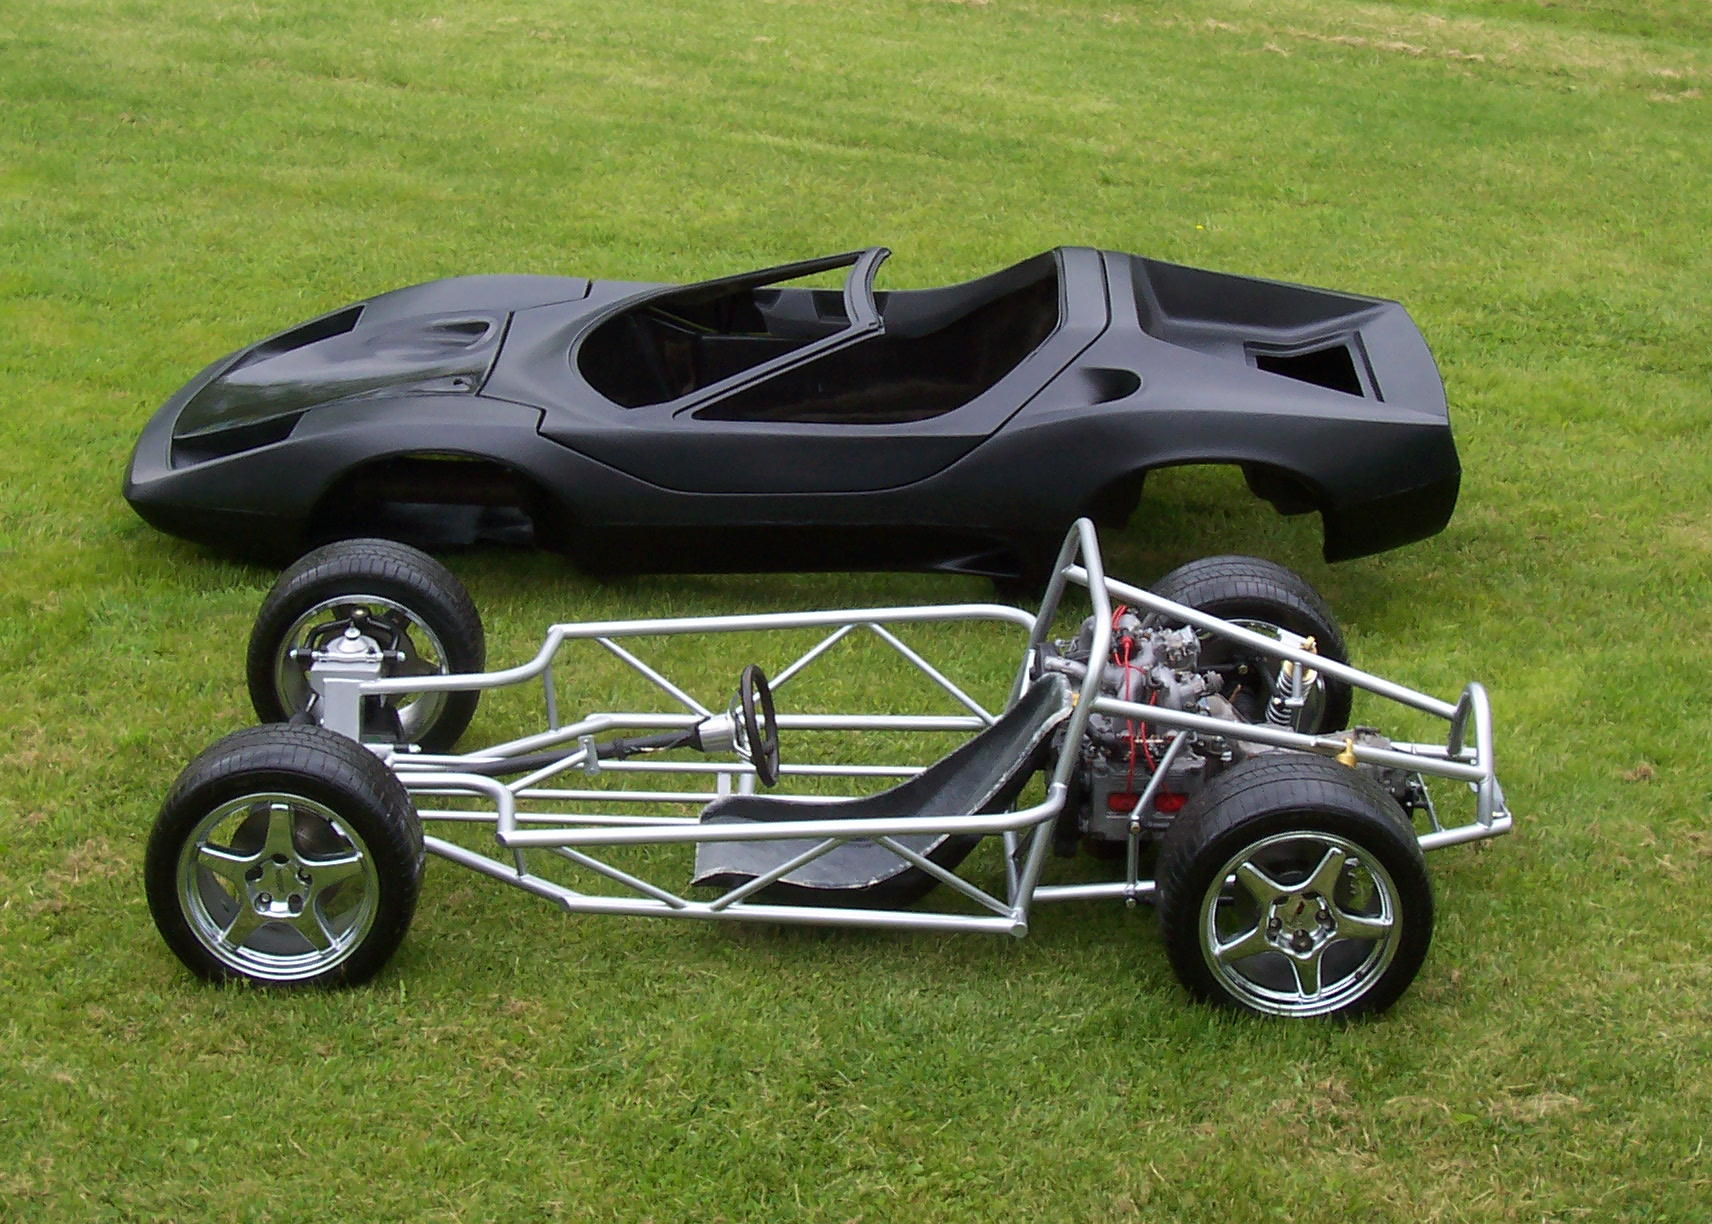 Image View Tube Mid Engine And New Body